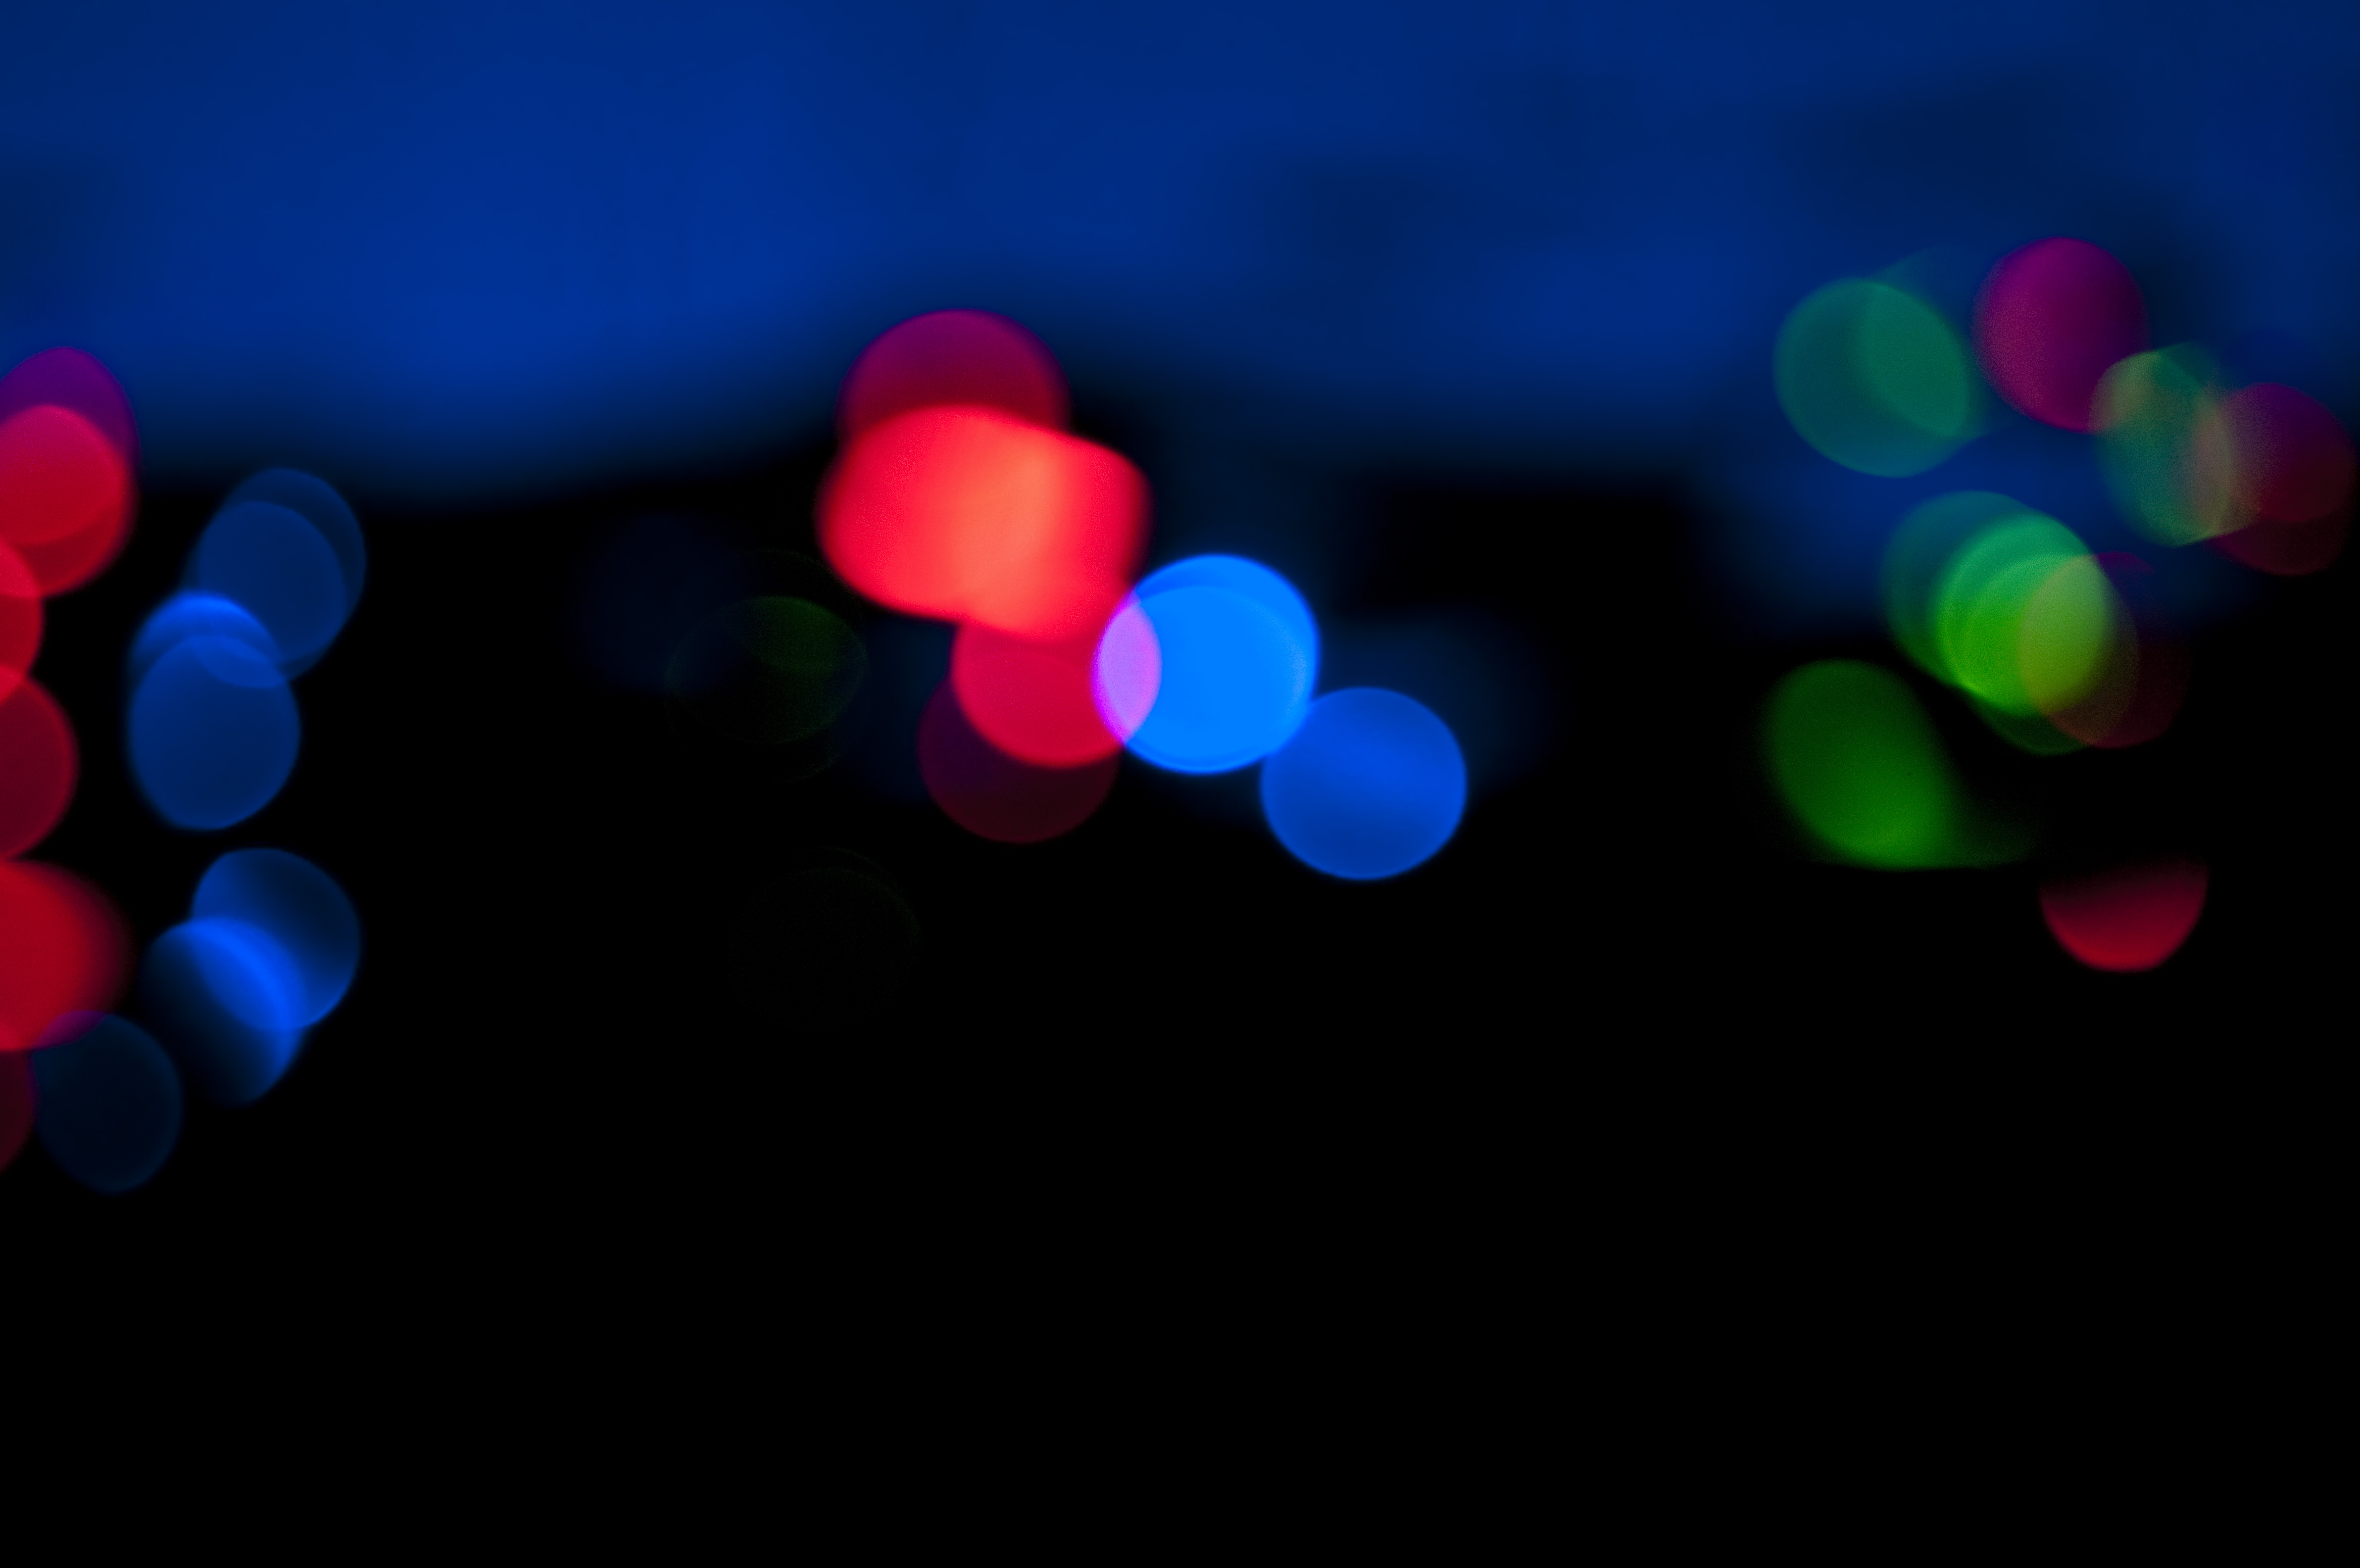 Free Stock Photo 2304 Glowing Lights Freeimageslive